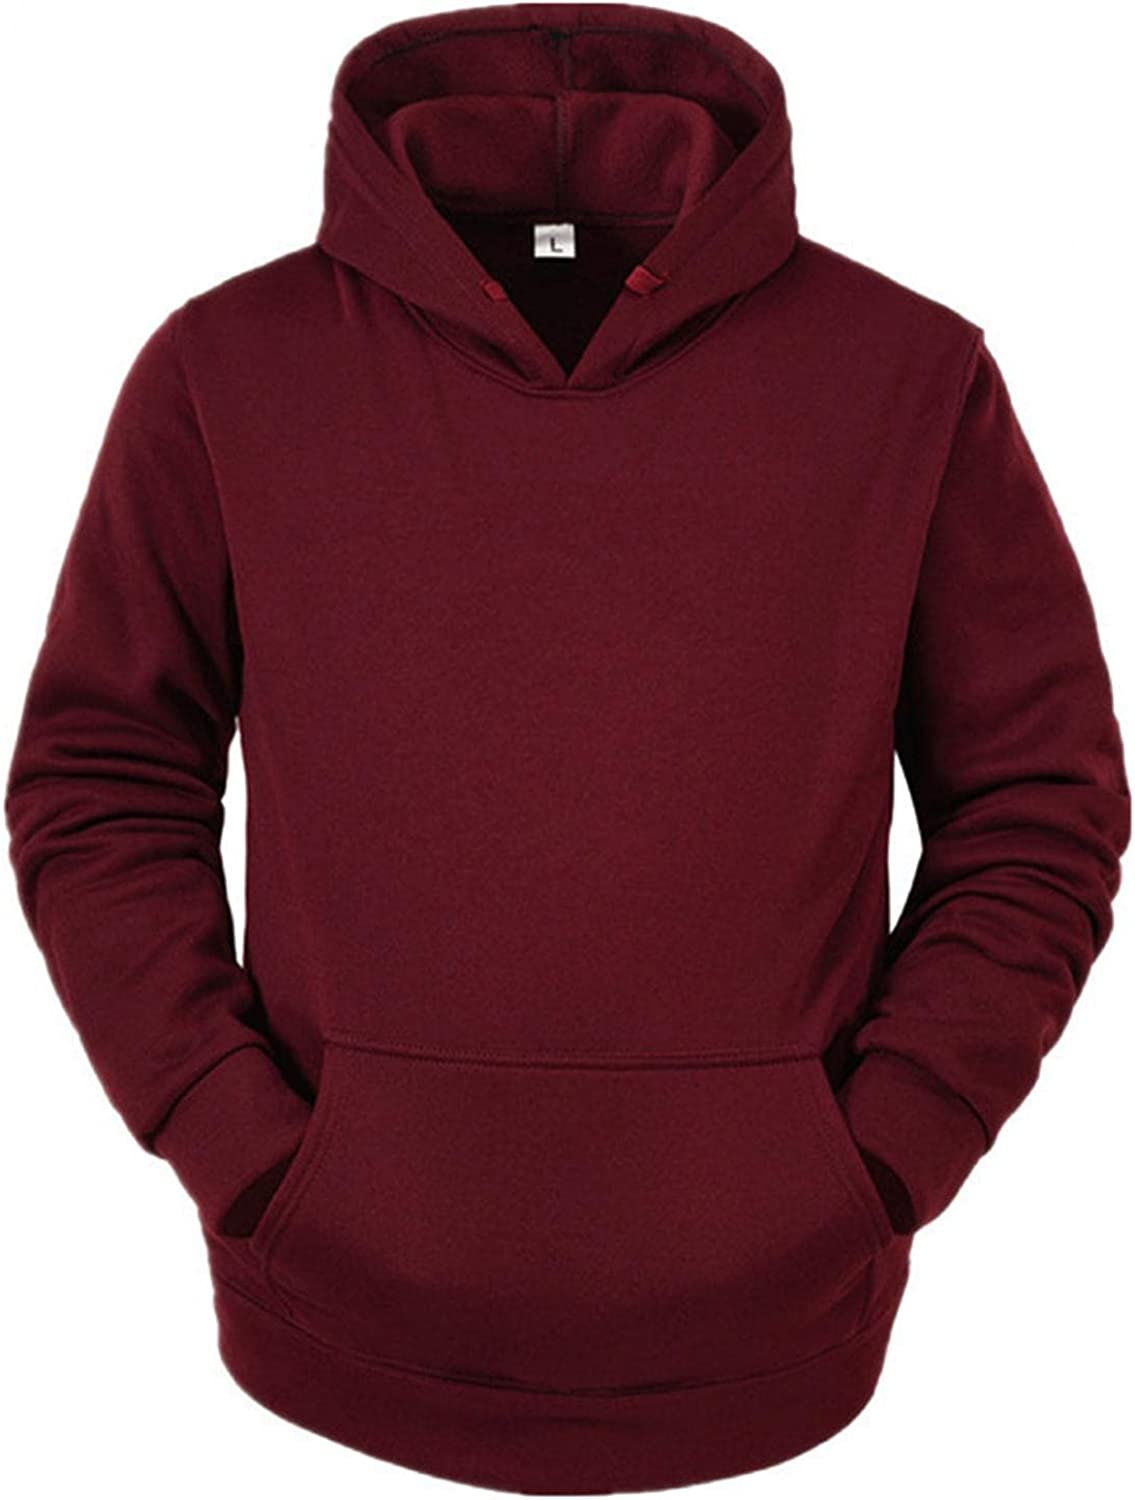 Men's Fashion Novelty Hoodies Crewneck Solid Pullover Midweight Long Sleeve T-Shirt Casual Sport Sweatshirts with Pocket